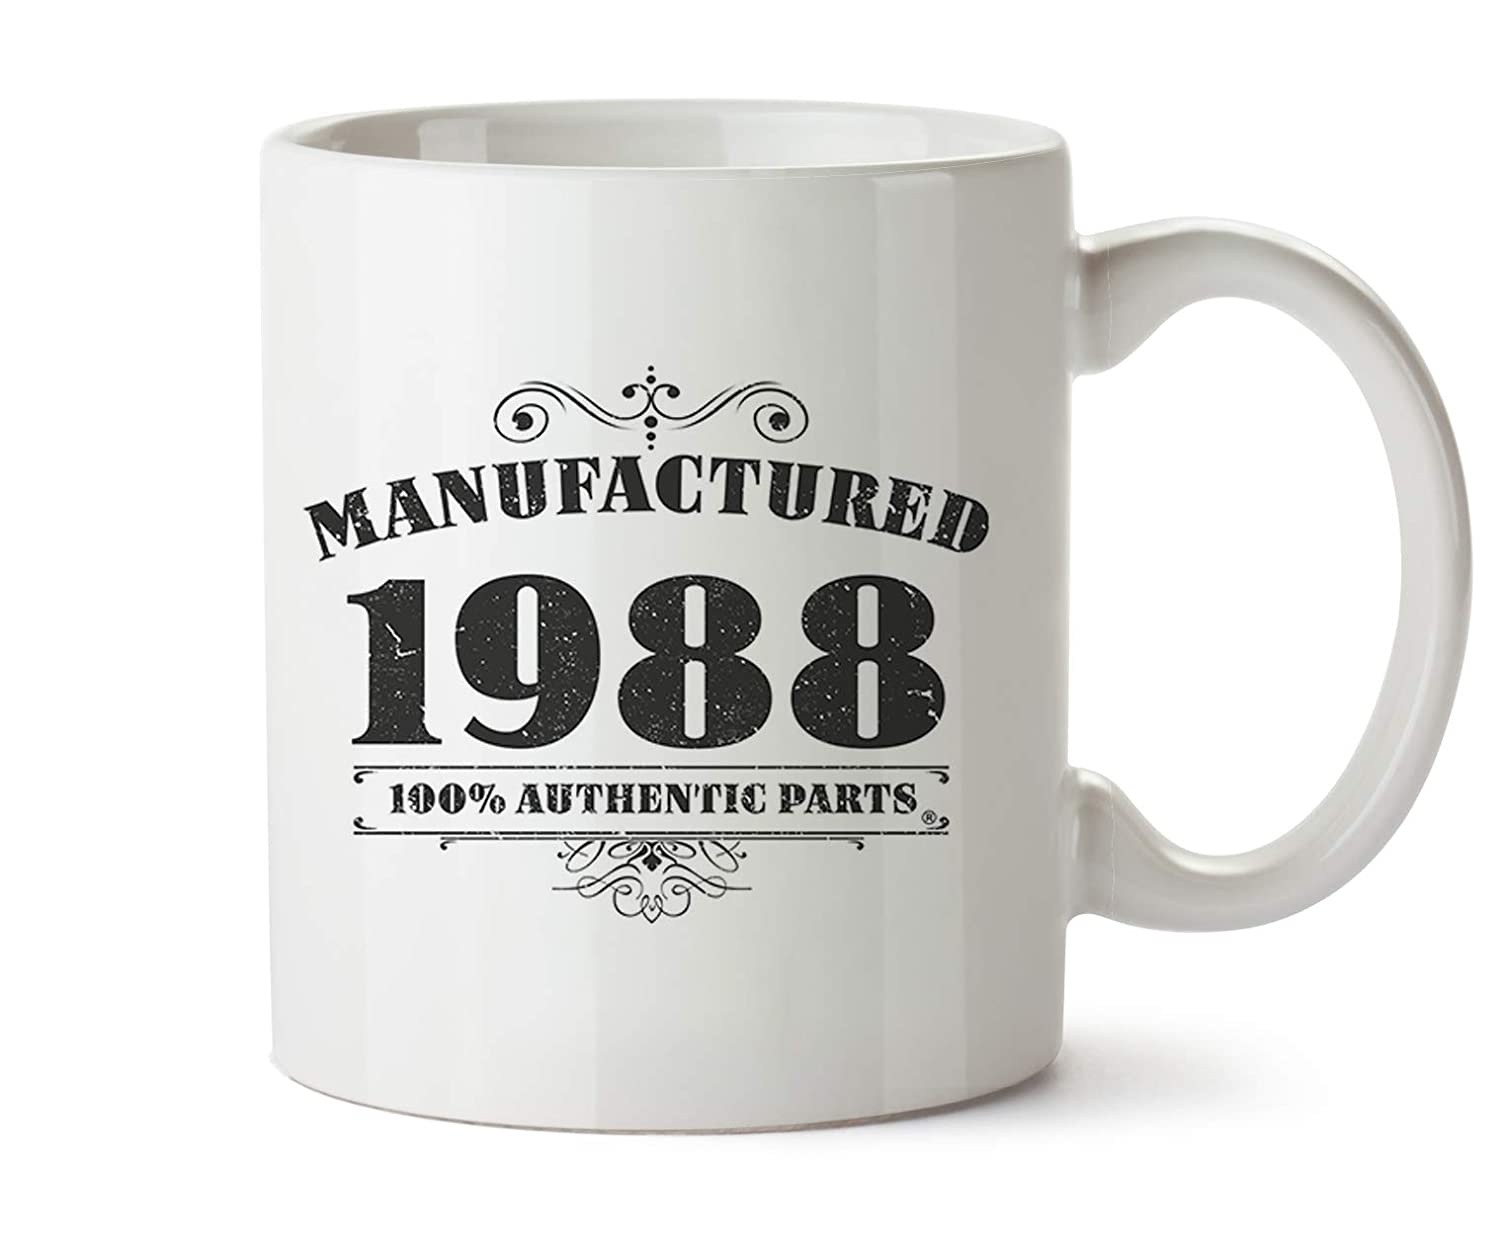 30th Birthday Gifts Manufactured 1988 Funny Mugs Birthday Gifts for Her & Birthday Gifts for Him Gift Boxed Bang Tidy Clothing RA1023P